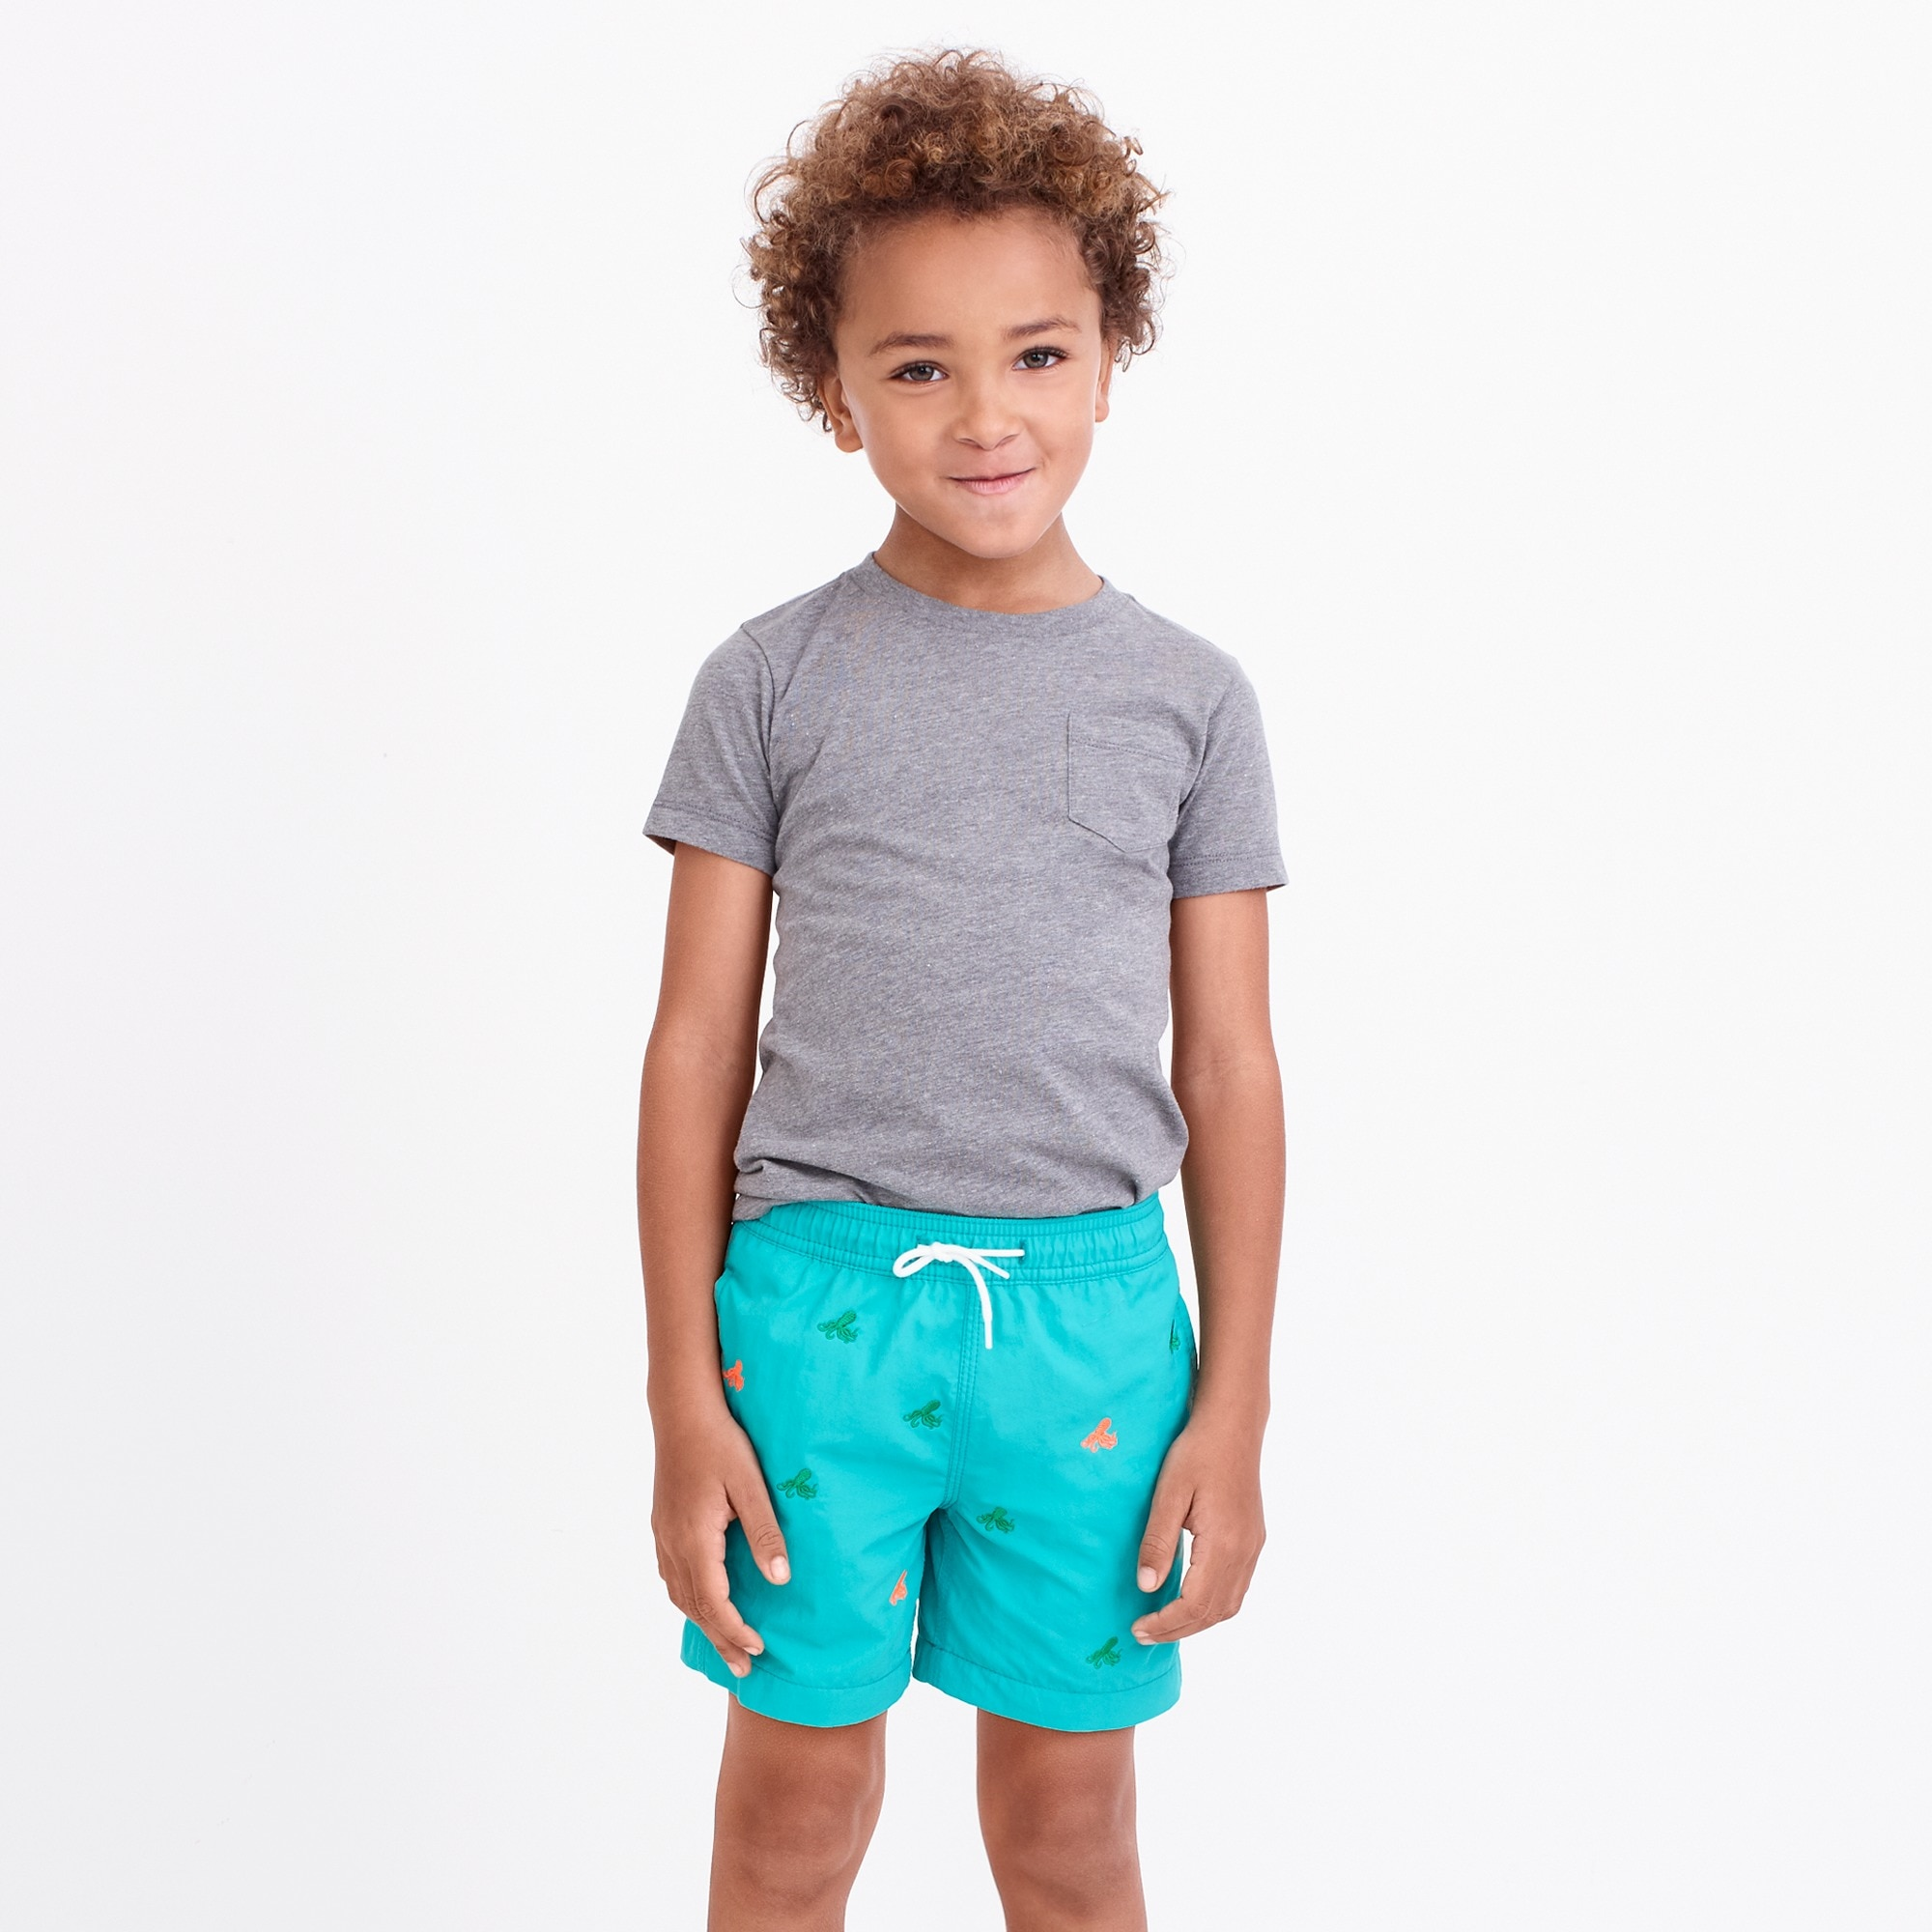 Boys' critter swim trunk factoryboys the camp shop c